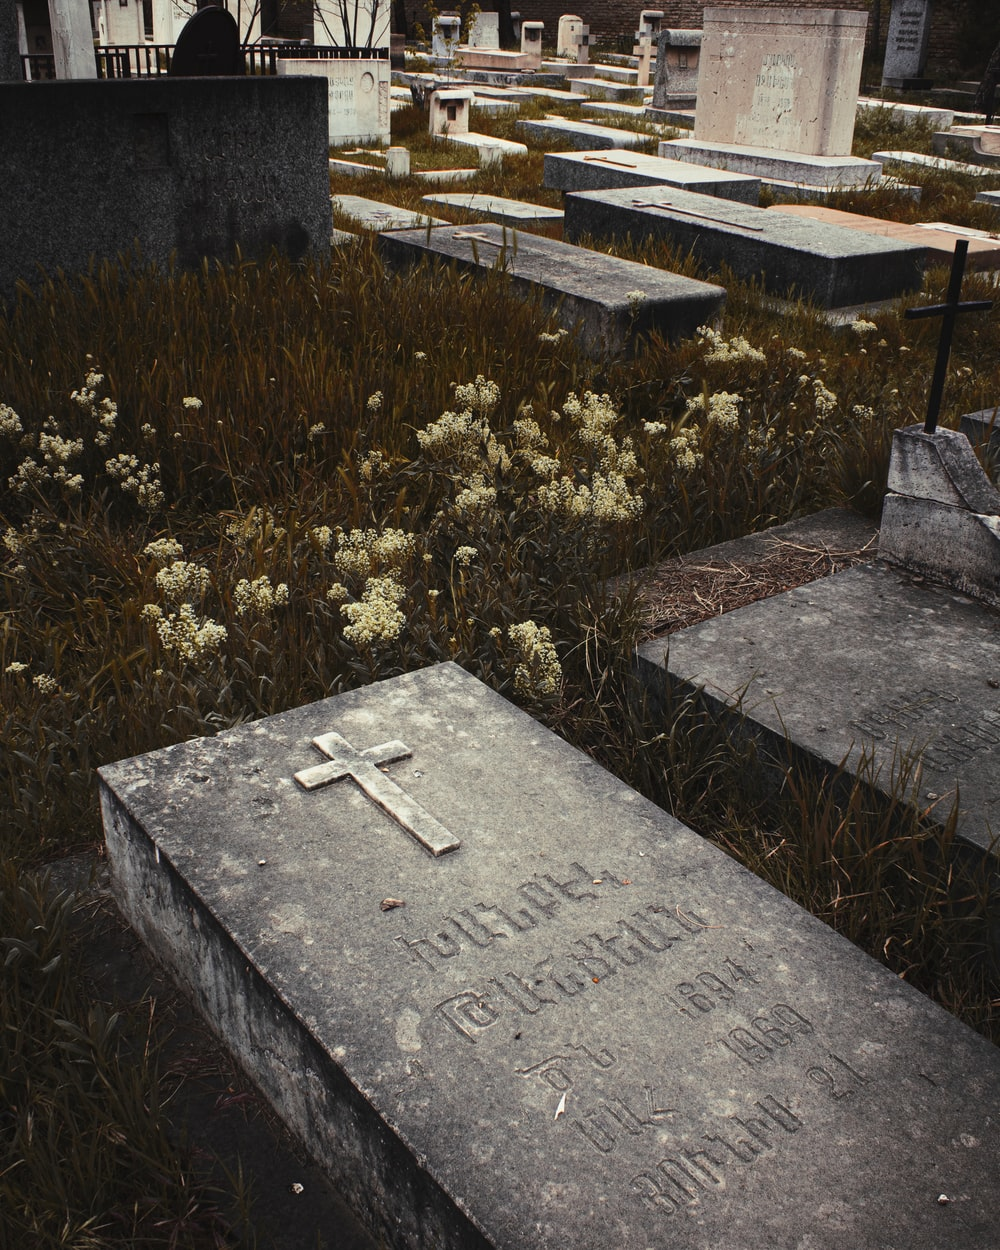 gray tomb stone near green grass during daytime